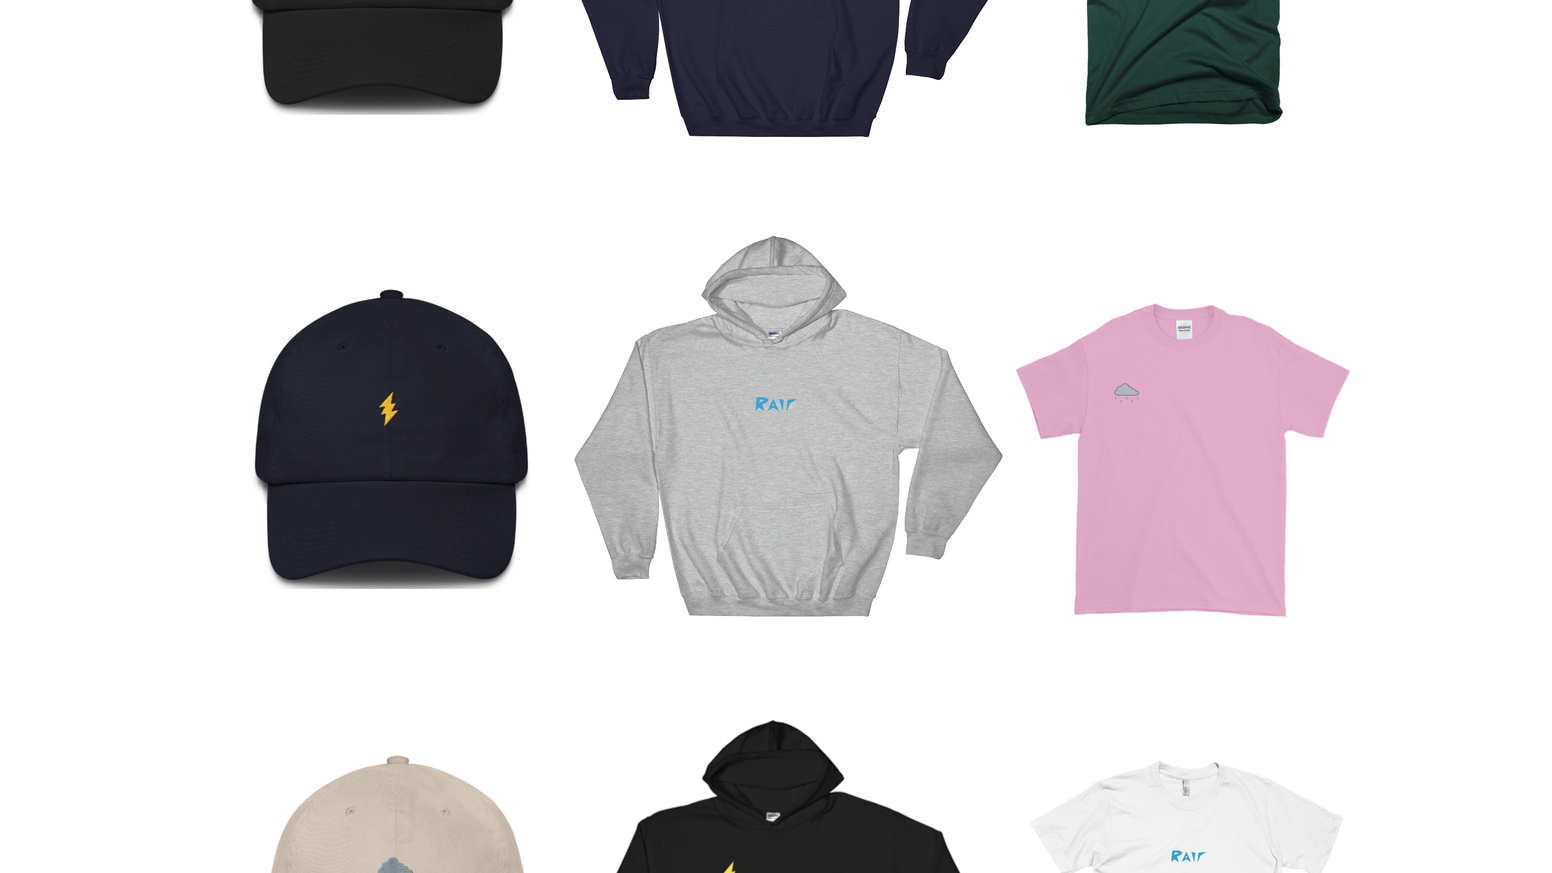 Rair is an up-and-coming underground streetwear clothing brand based out of San Antonio, TX with minimalistic & embroidered designs.